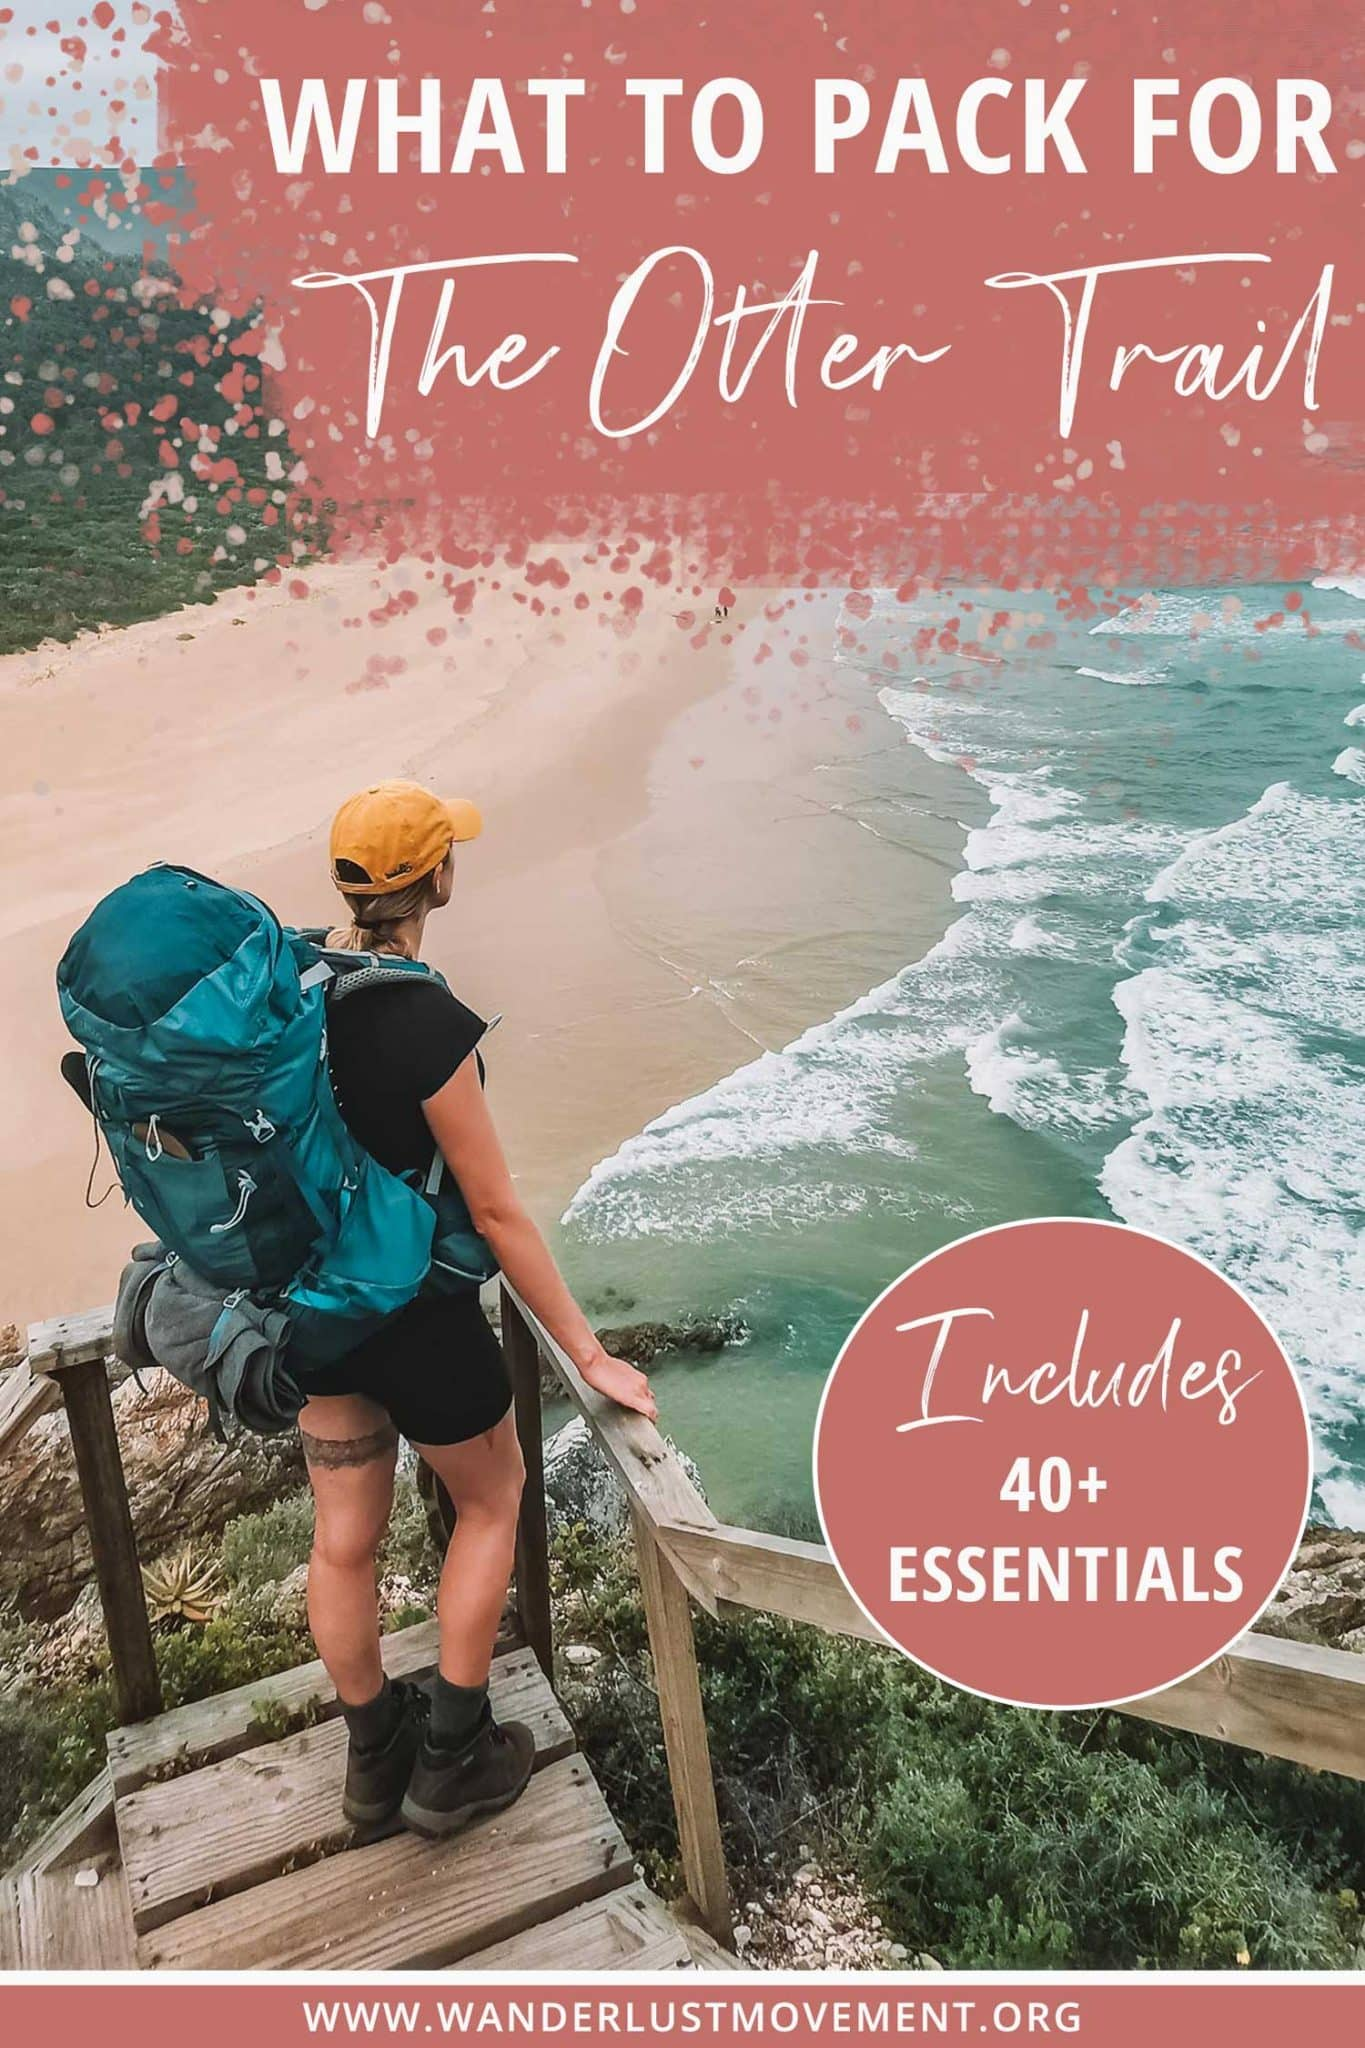 Otter Trail Packing List: 40+ Must-Have Items to Survive The Wilderness